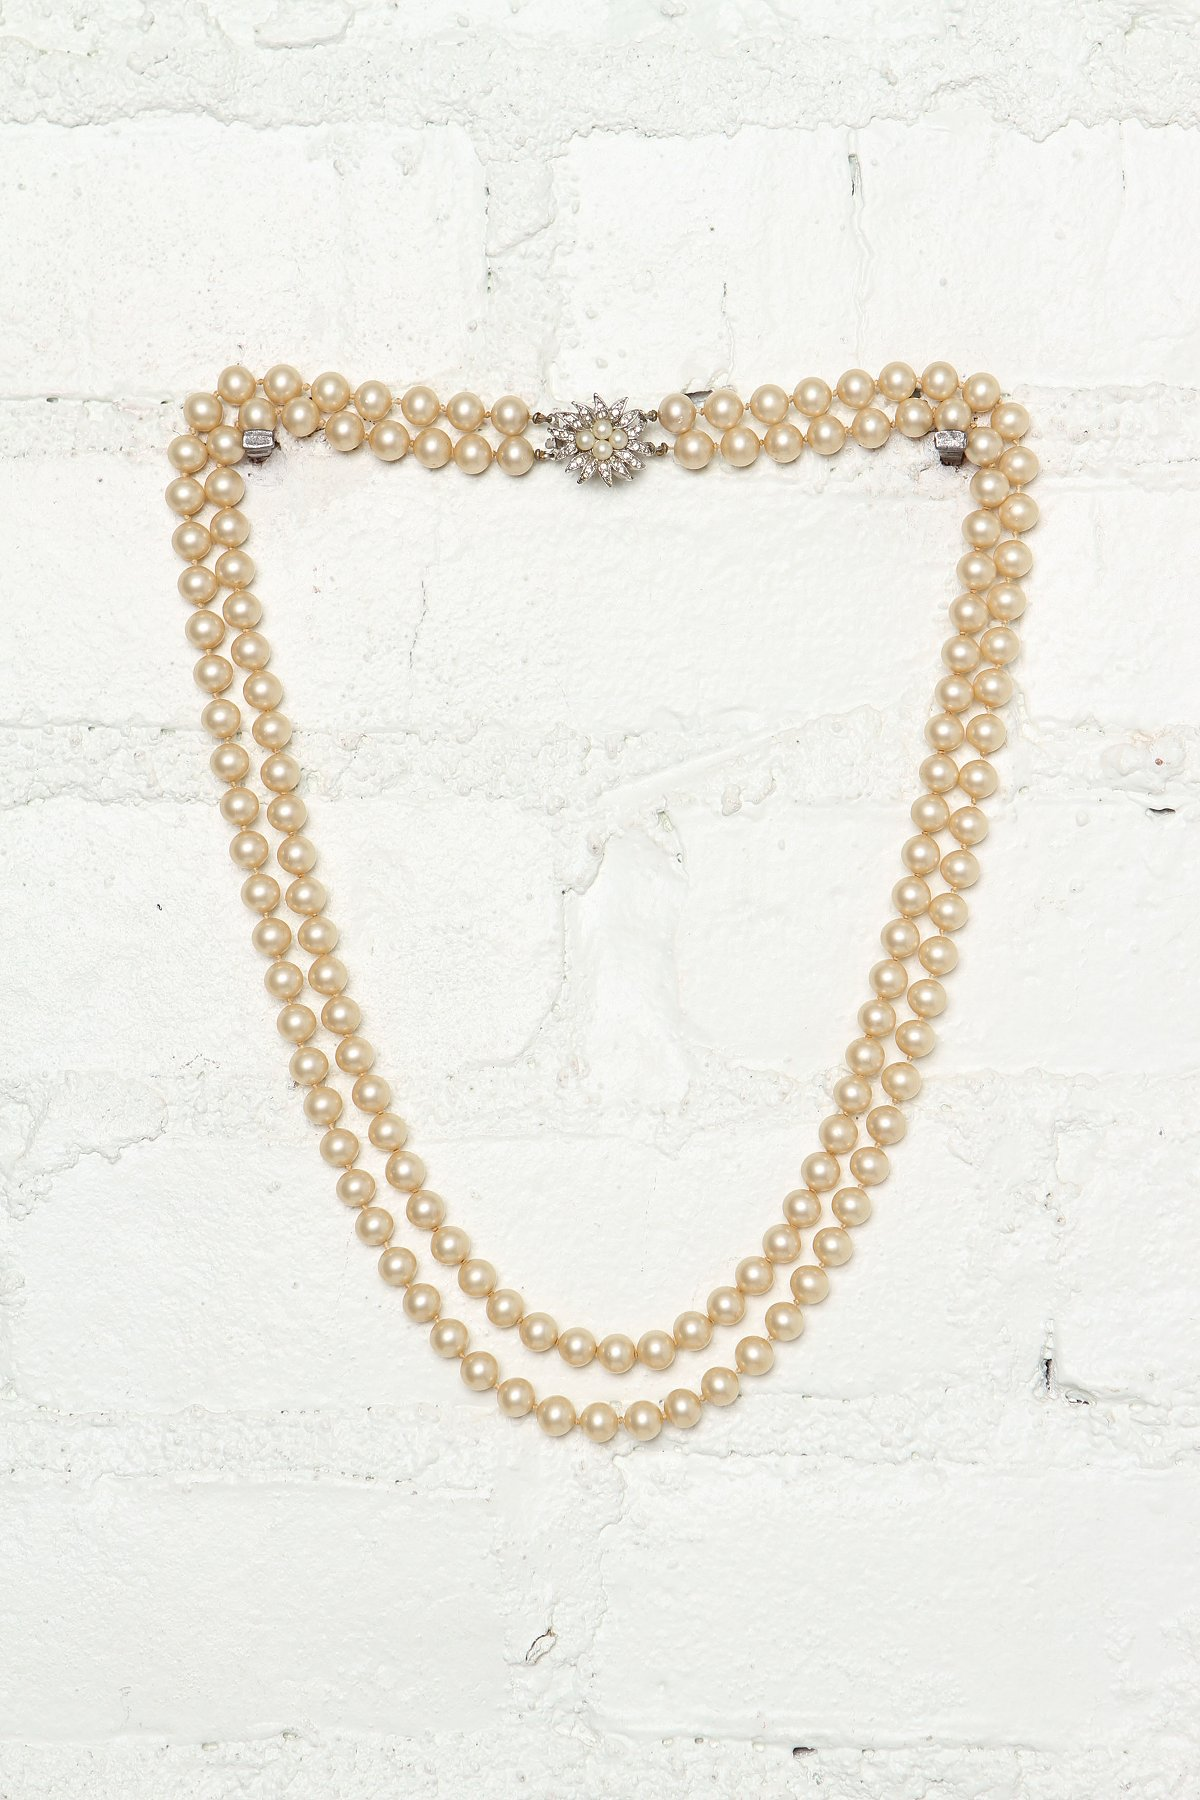 Vintage Double Tiered Pearl Necklace